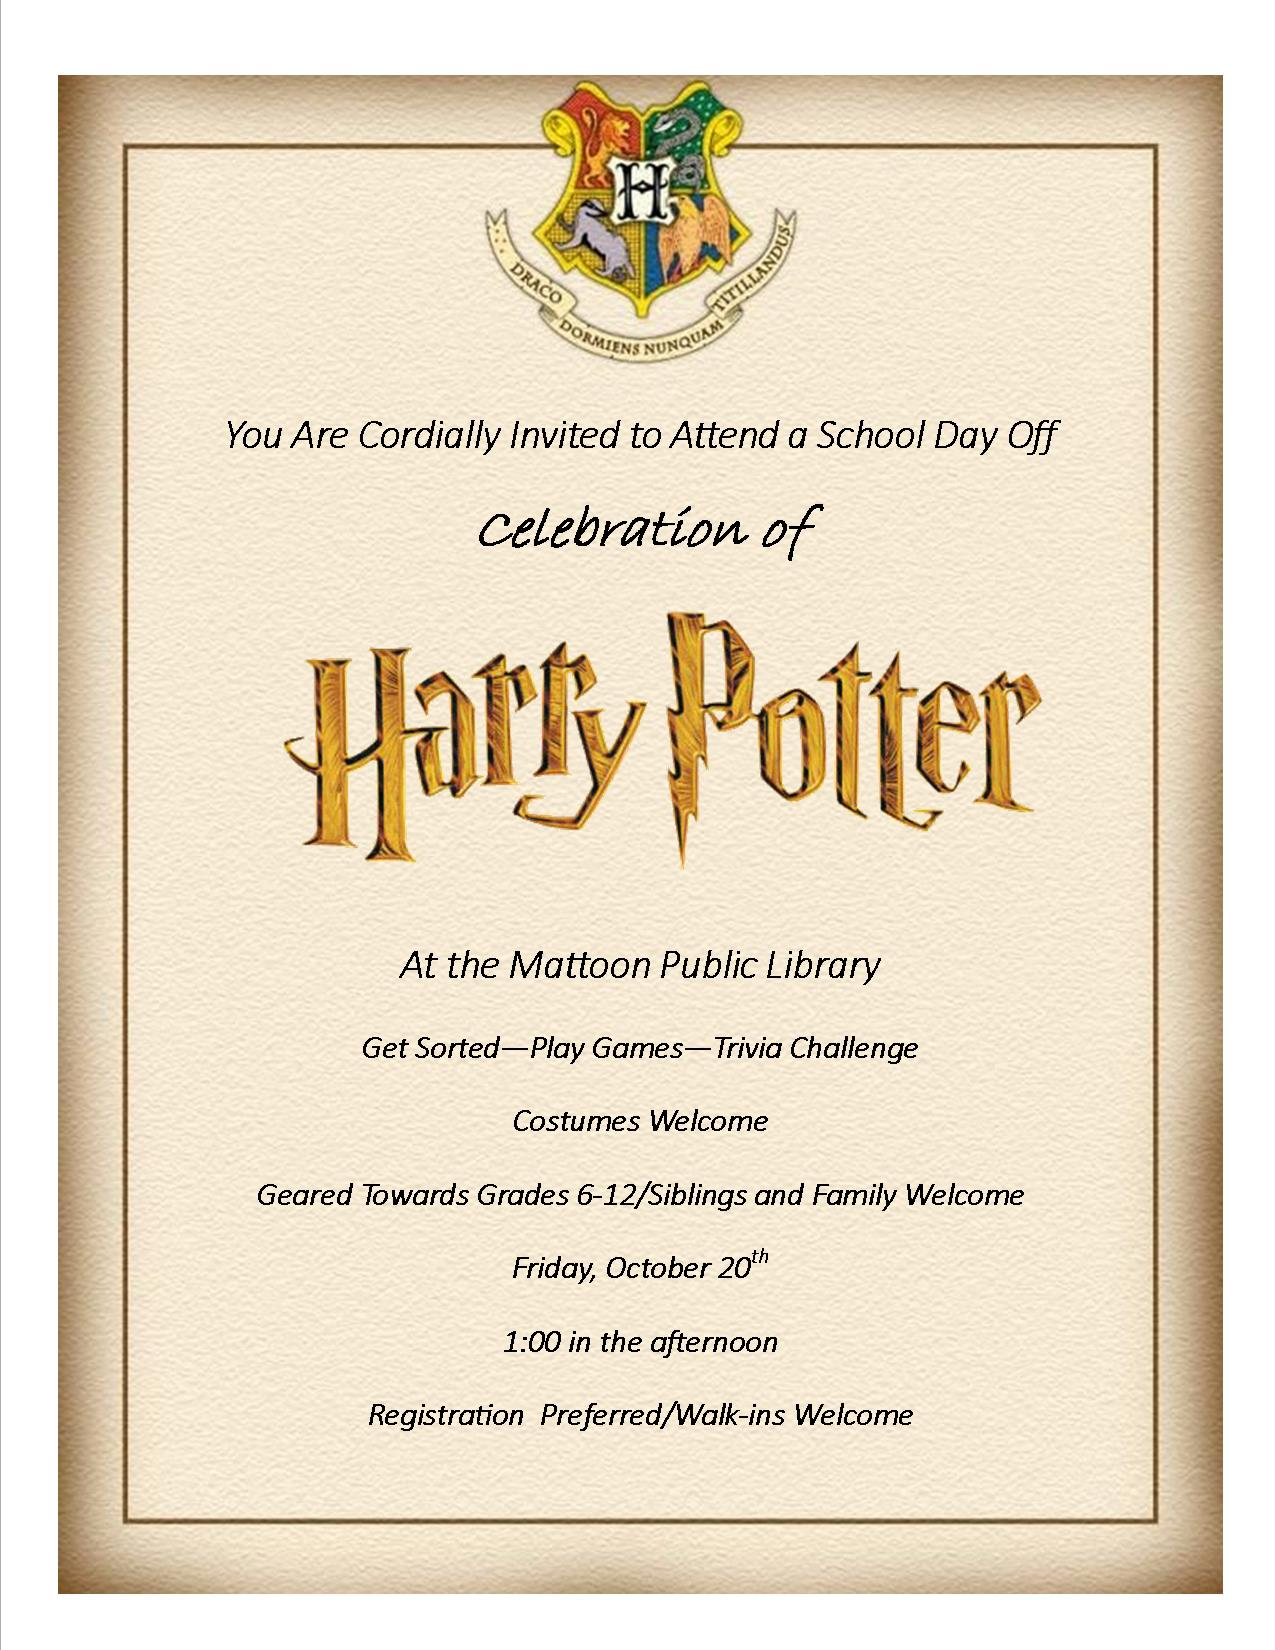 Mattoon Public Library to Host a Celebration of Harry Potter